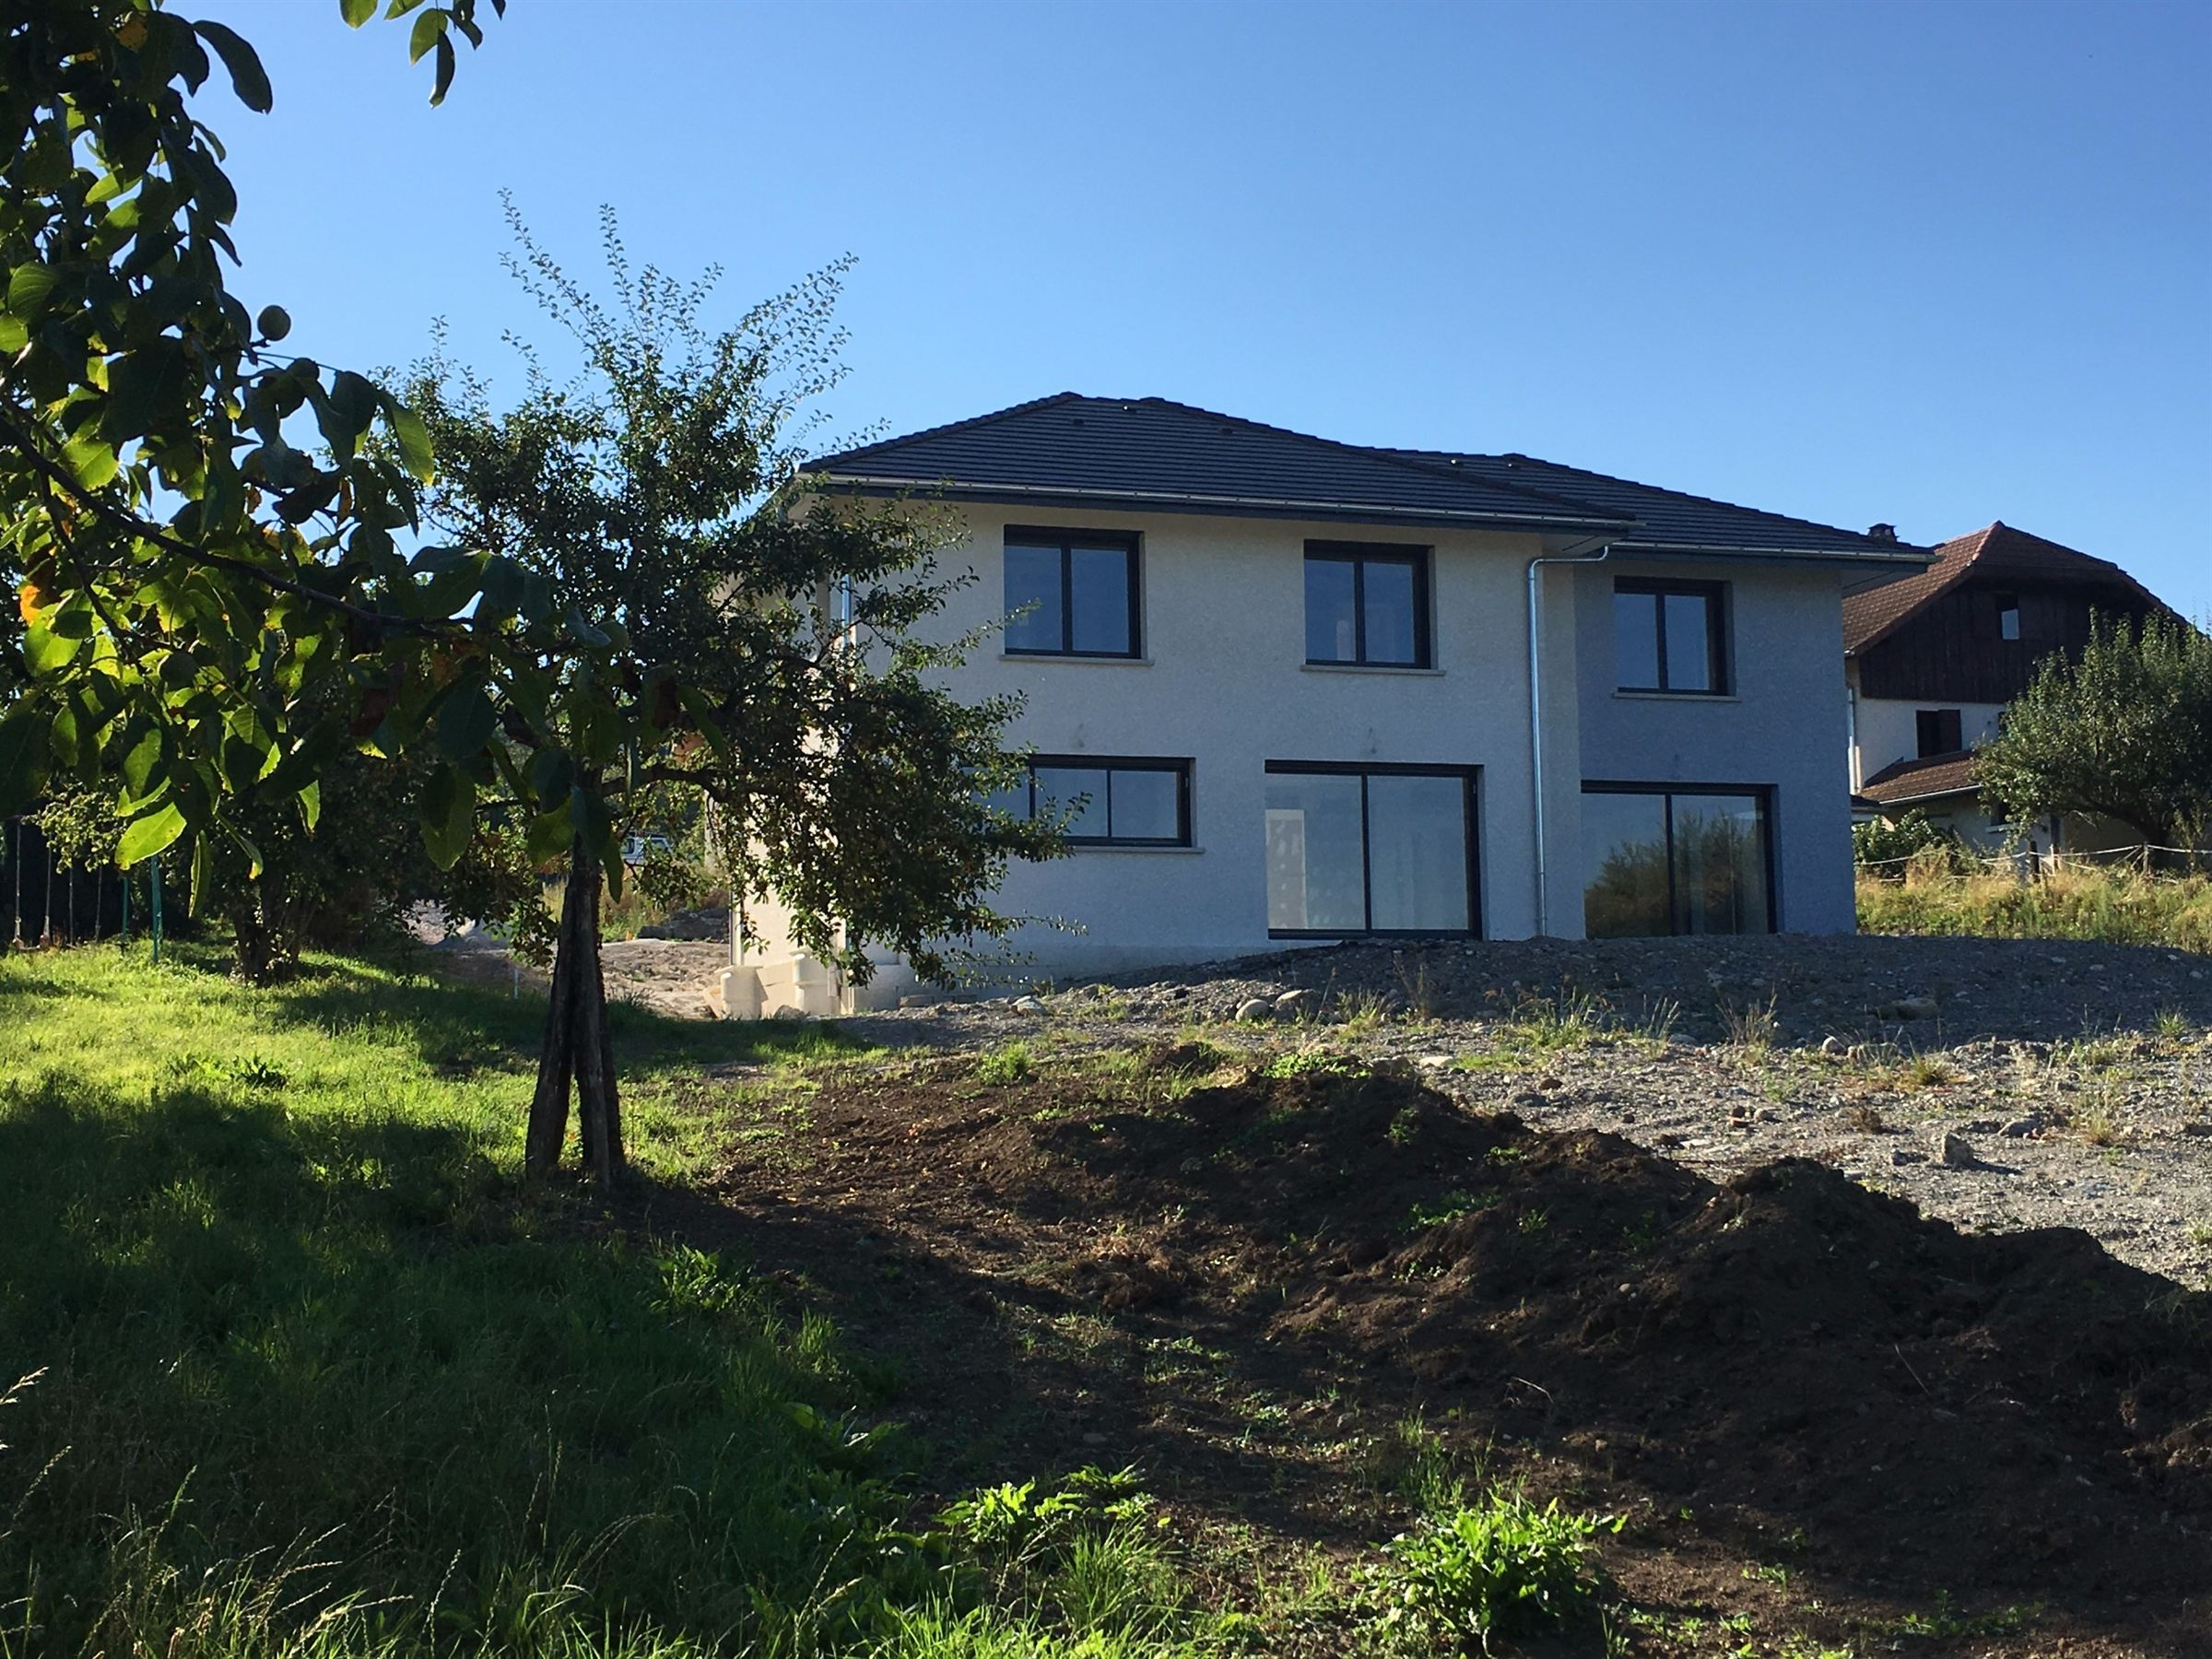 Single Family Home for Sale at New contemporary villa near Evian and Thonon Marin, Rhone-Alpes, 74200 France